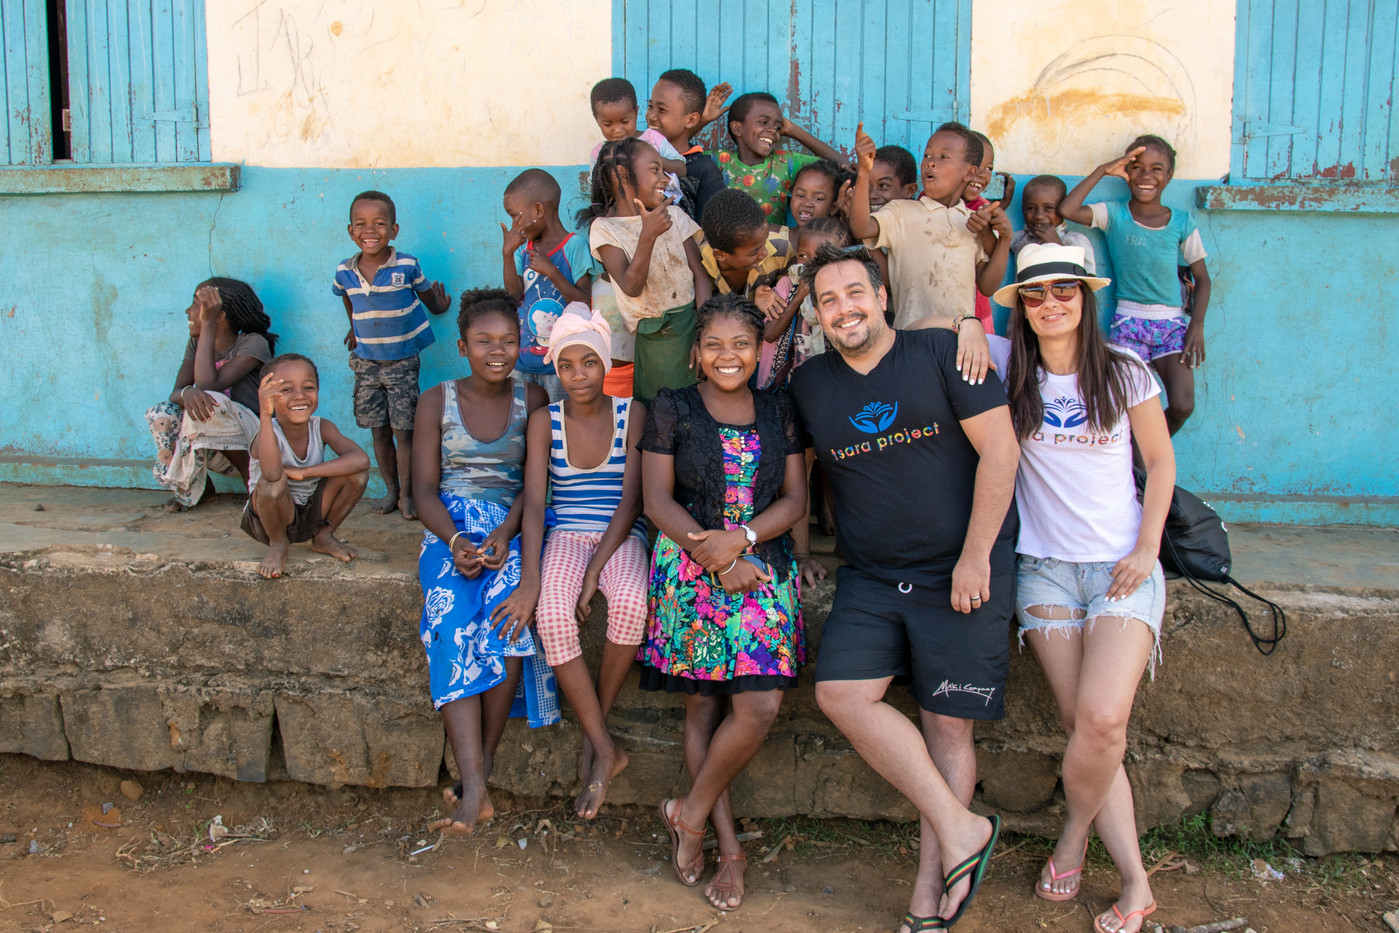 Us with the children in front of the school